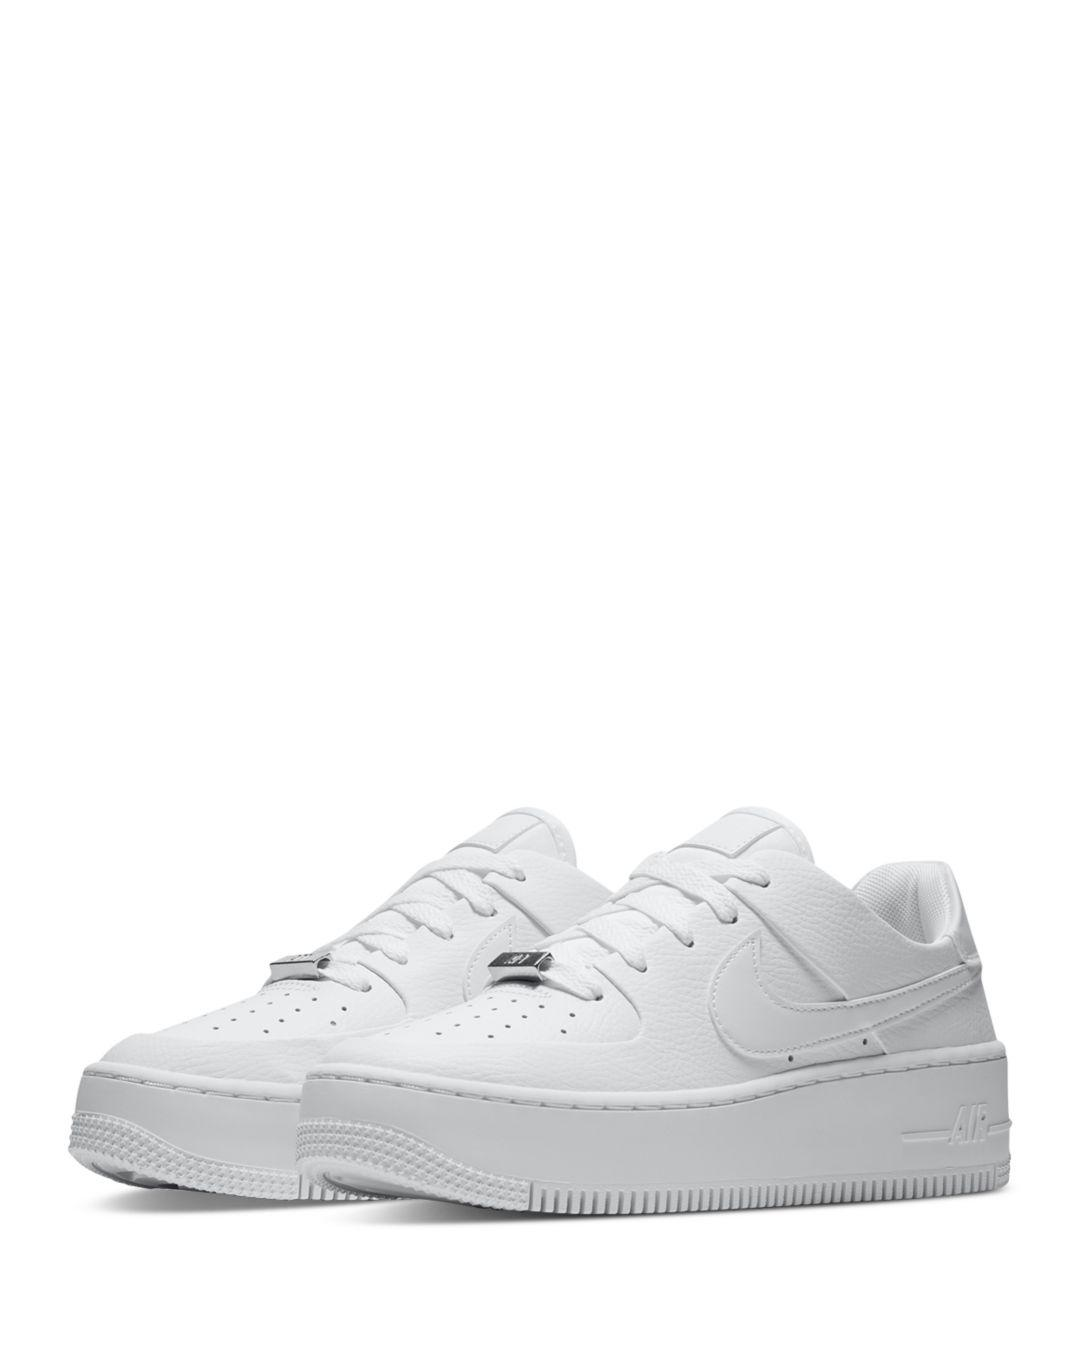 Nike Suede Air Force 1 Sage Low - Top Sneakers in White/White ...